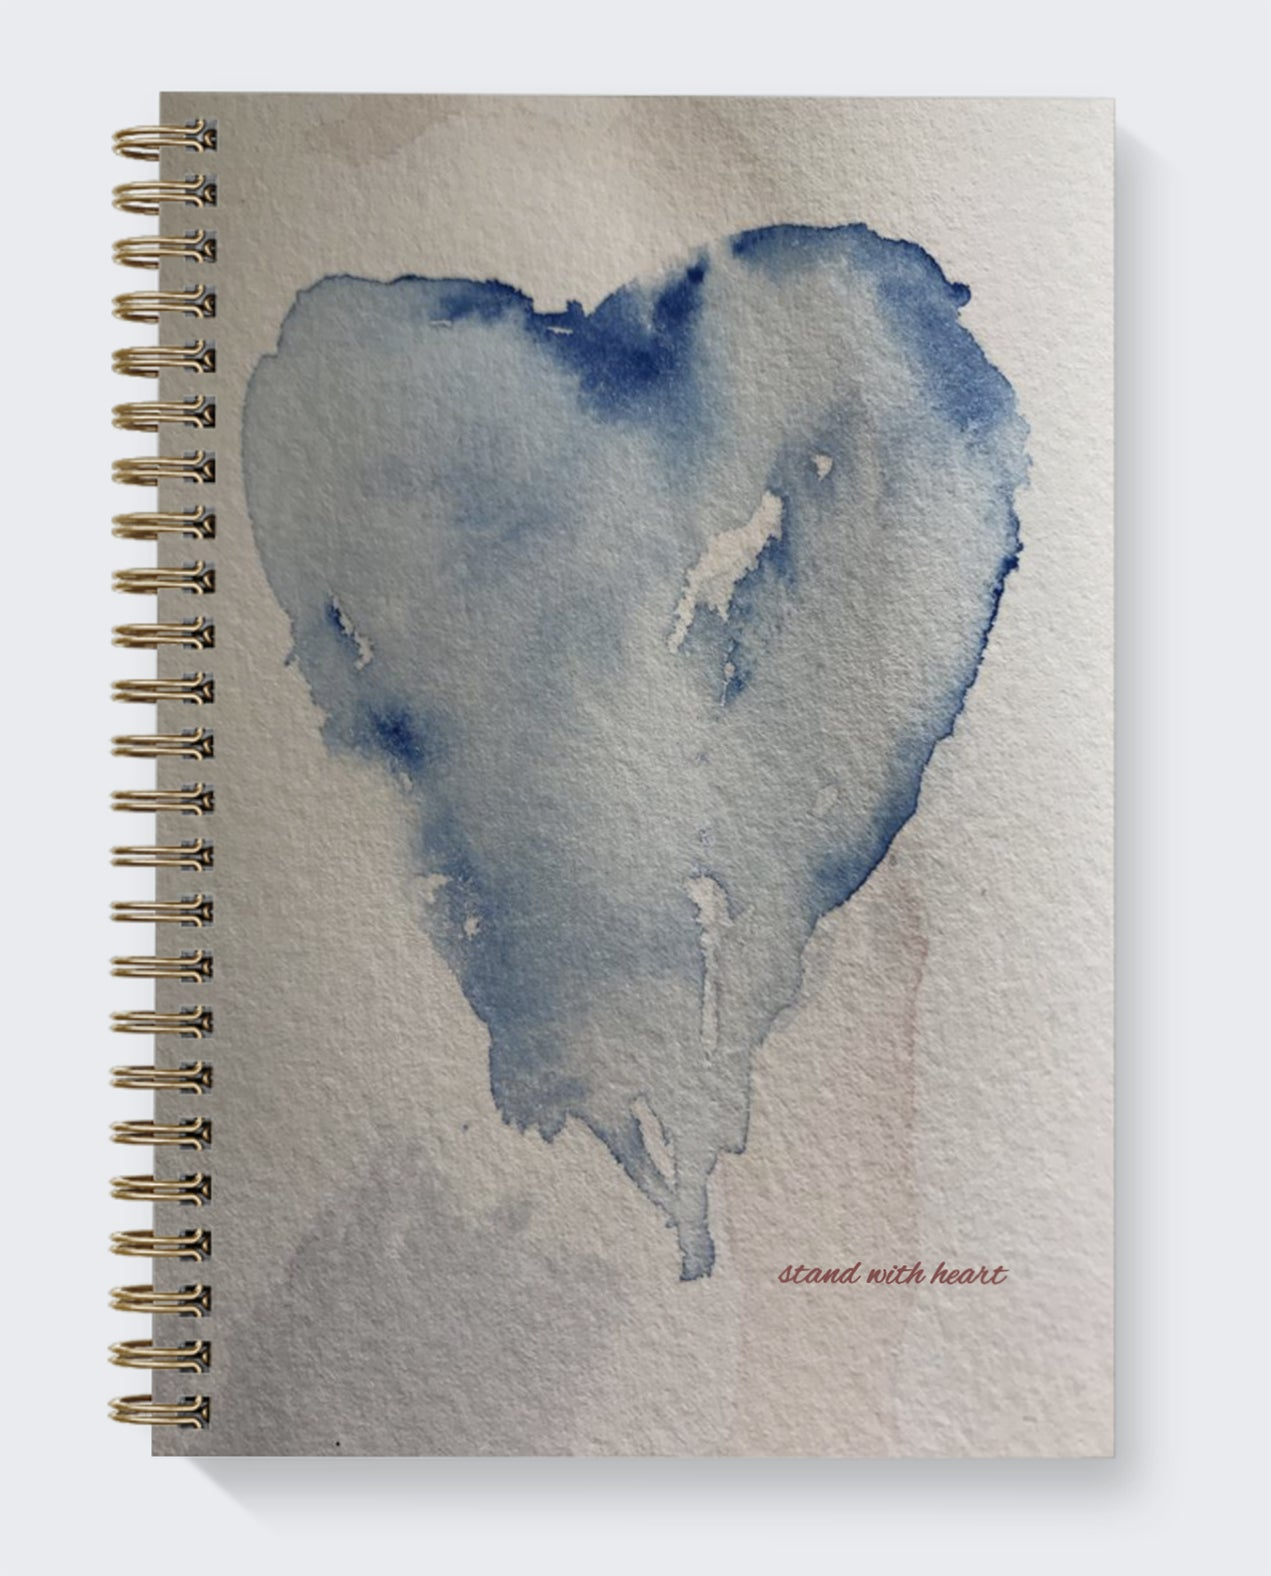 dot journal heart watercolor original stand with heart